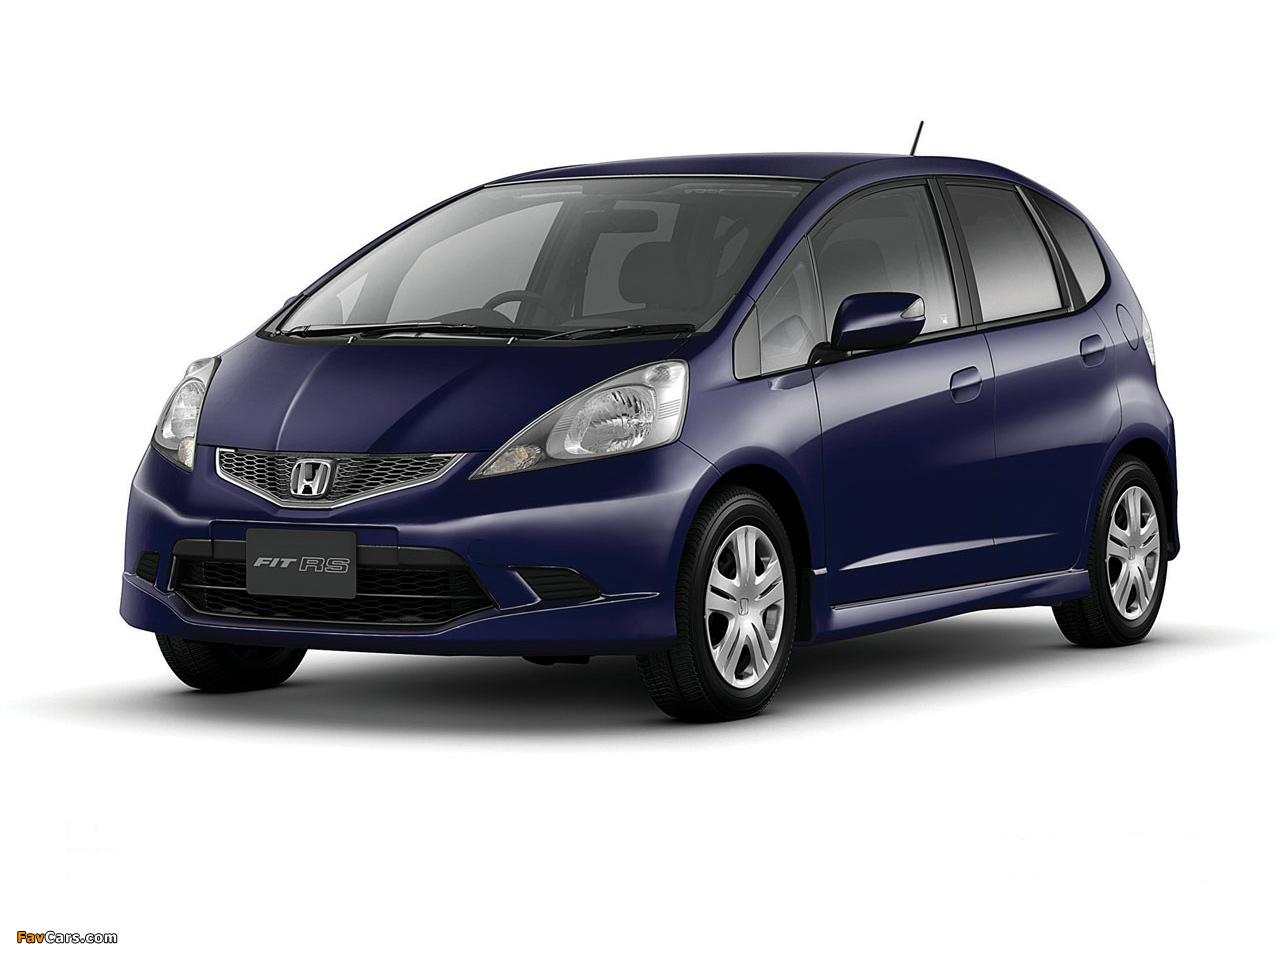 2008 honda fit ii ge pictures information and specs for Honda fit horsepower